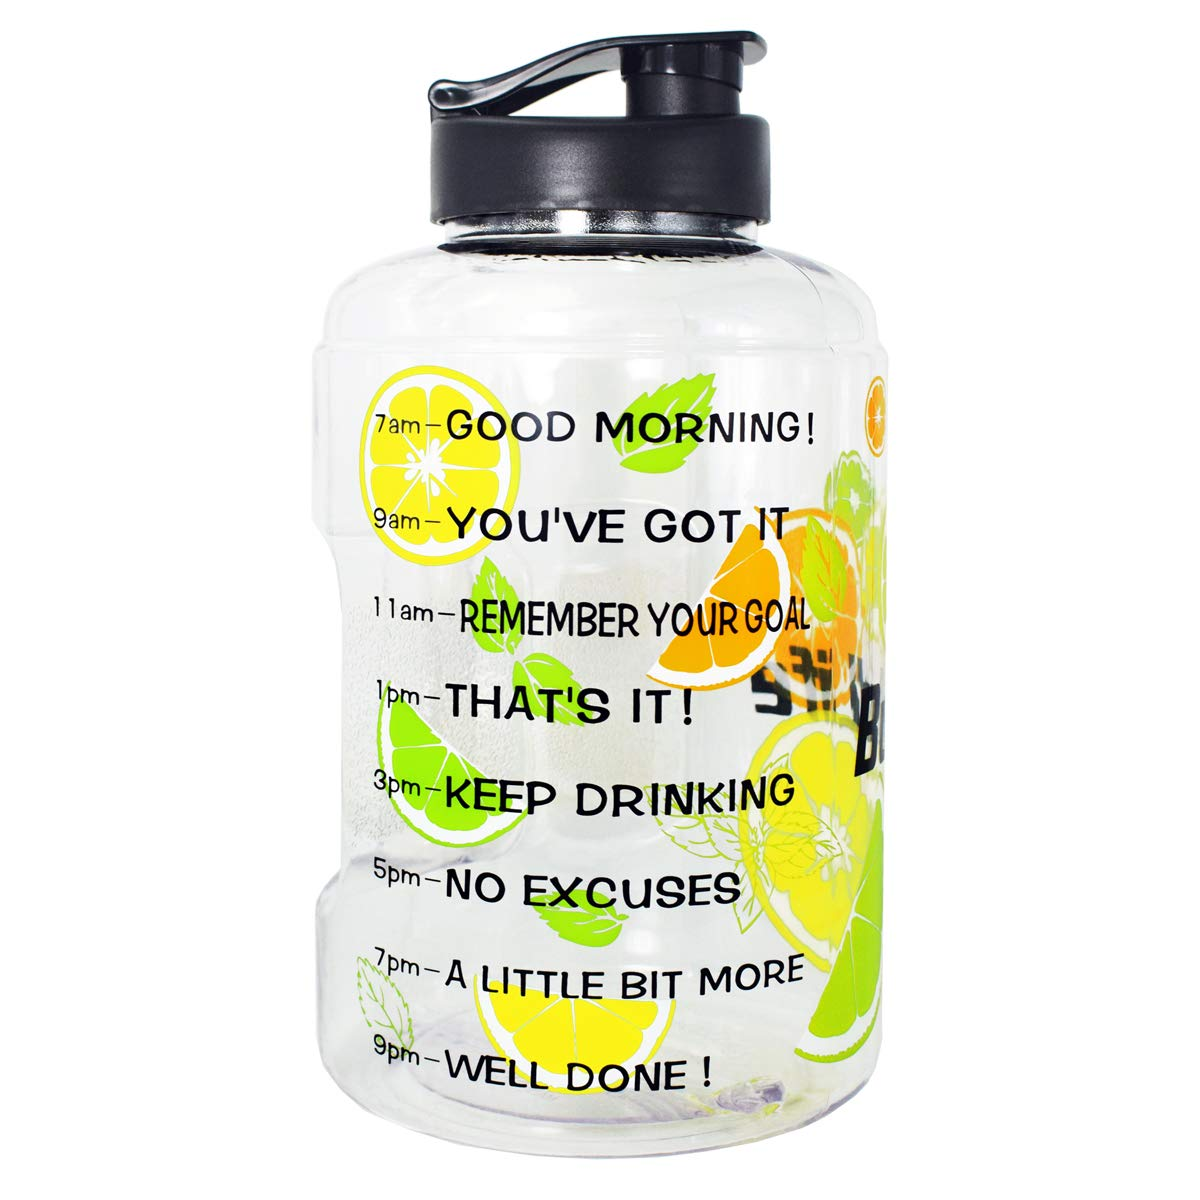 BuildLife 1 Gallon(128OZ) Sports Water Bottle Inspirational Fitness Workout Wide Mouth with Time Marker for Measuring Your H2O Intake BPA Free (1 Gallon, Lemon)